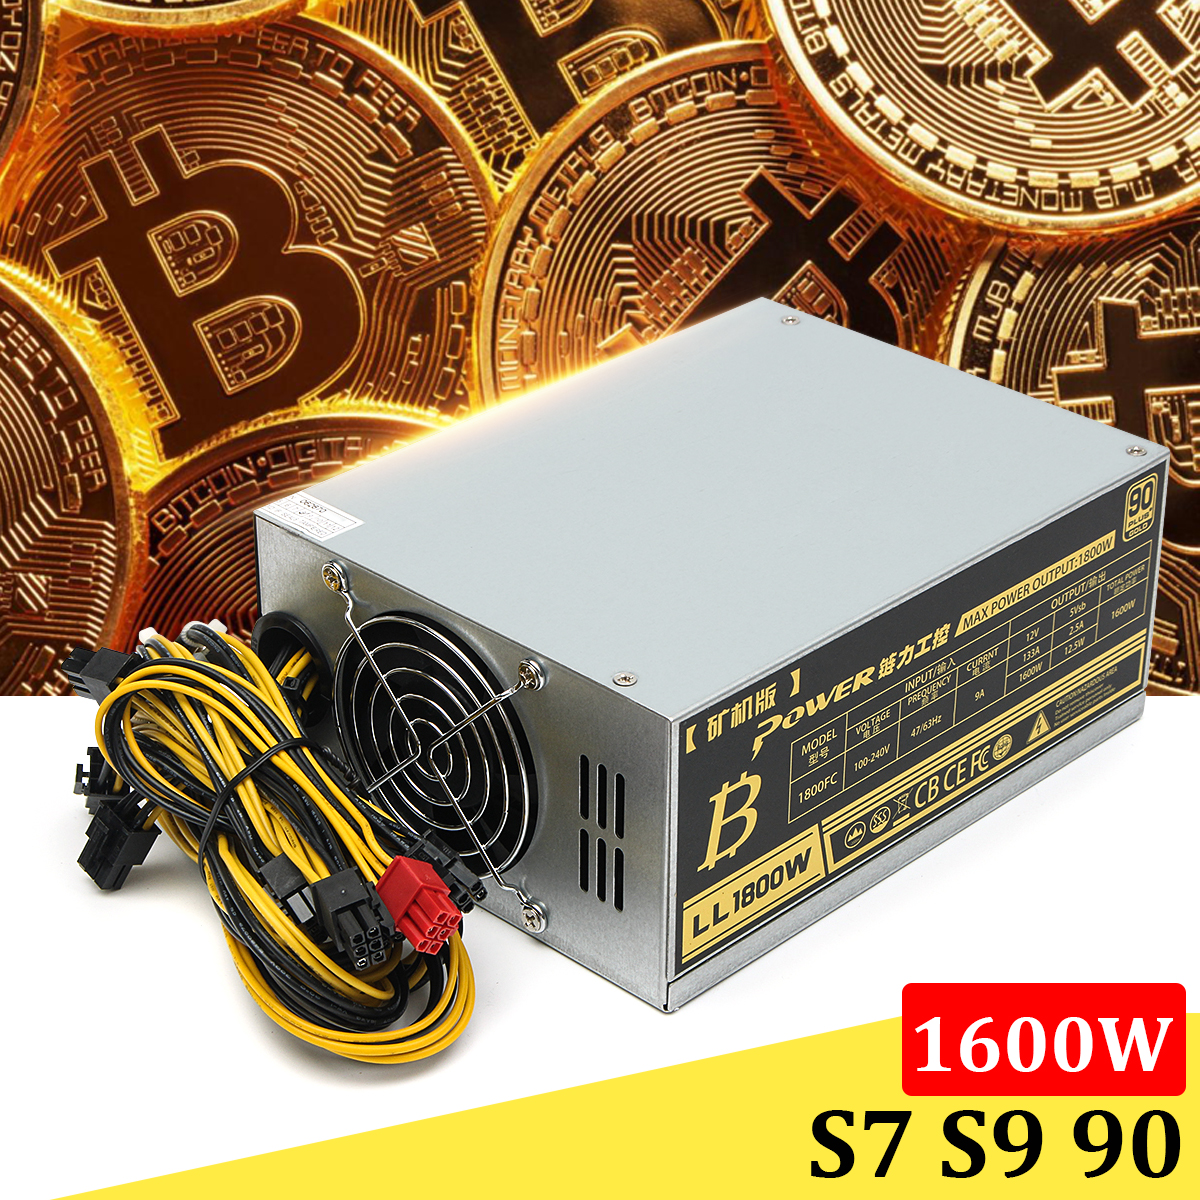 цена Max 1800W Mining Machine Power Supply For Eth Bitcoin Miner Antminer S7 S9 Ethereum